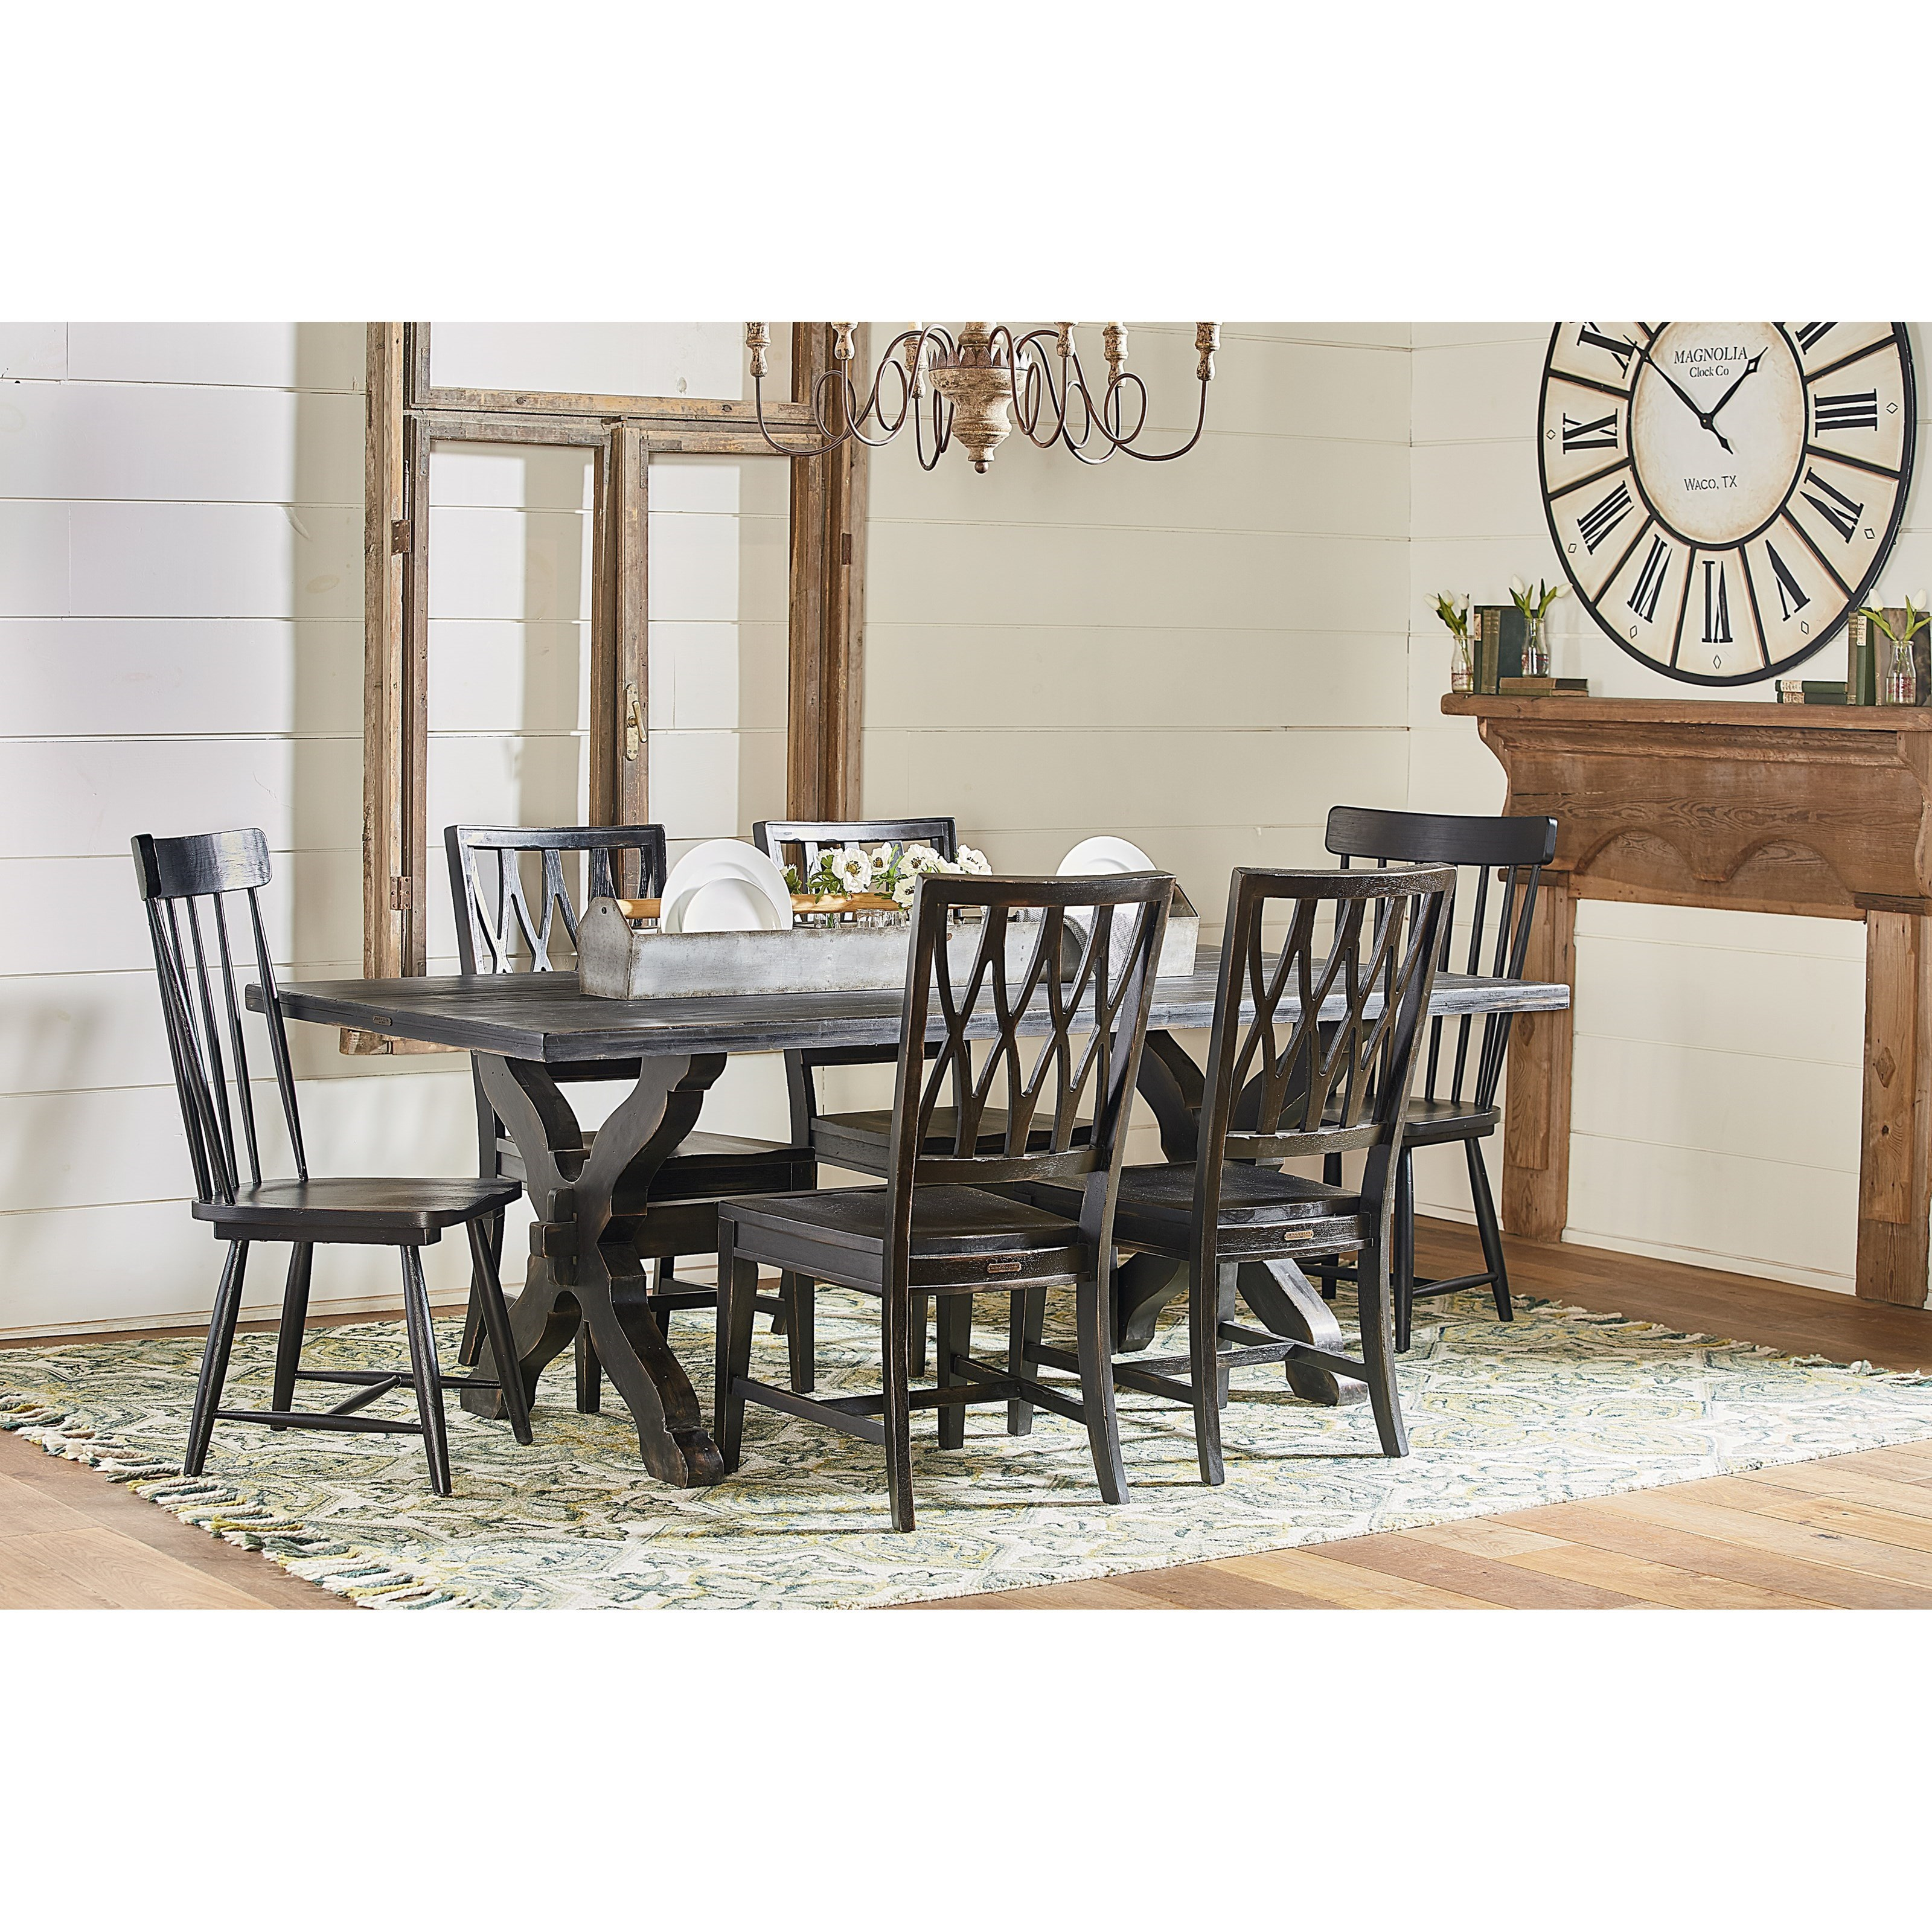 Magnolia Home By Joanna Gaines Primitive Sawbuck Dining Table Set   Darvin  Furniture   Dining 7 (or More) Piece Sets